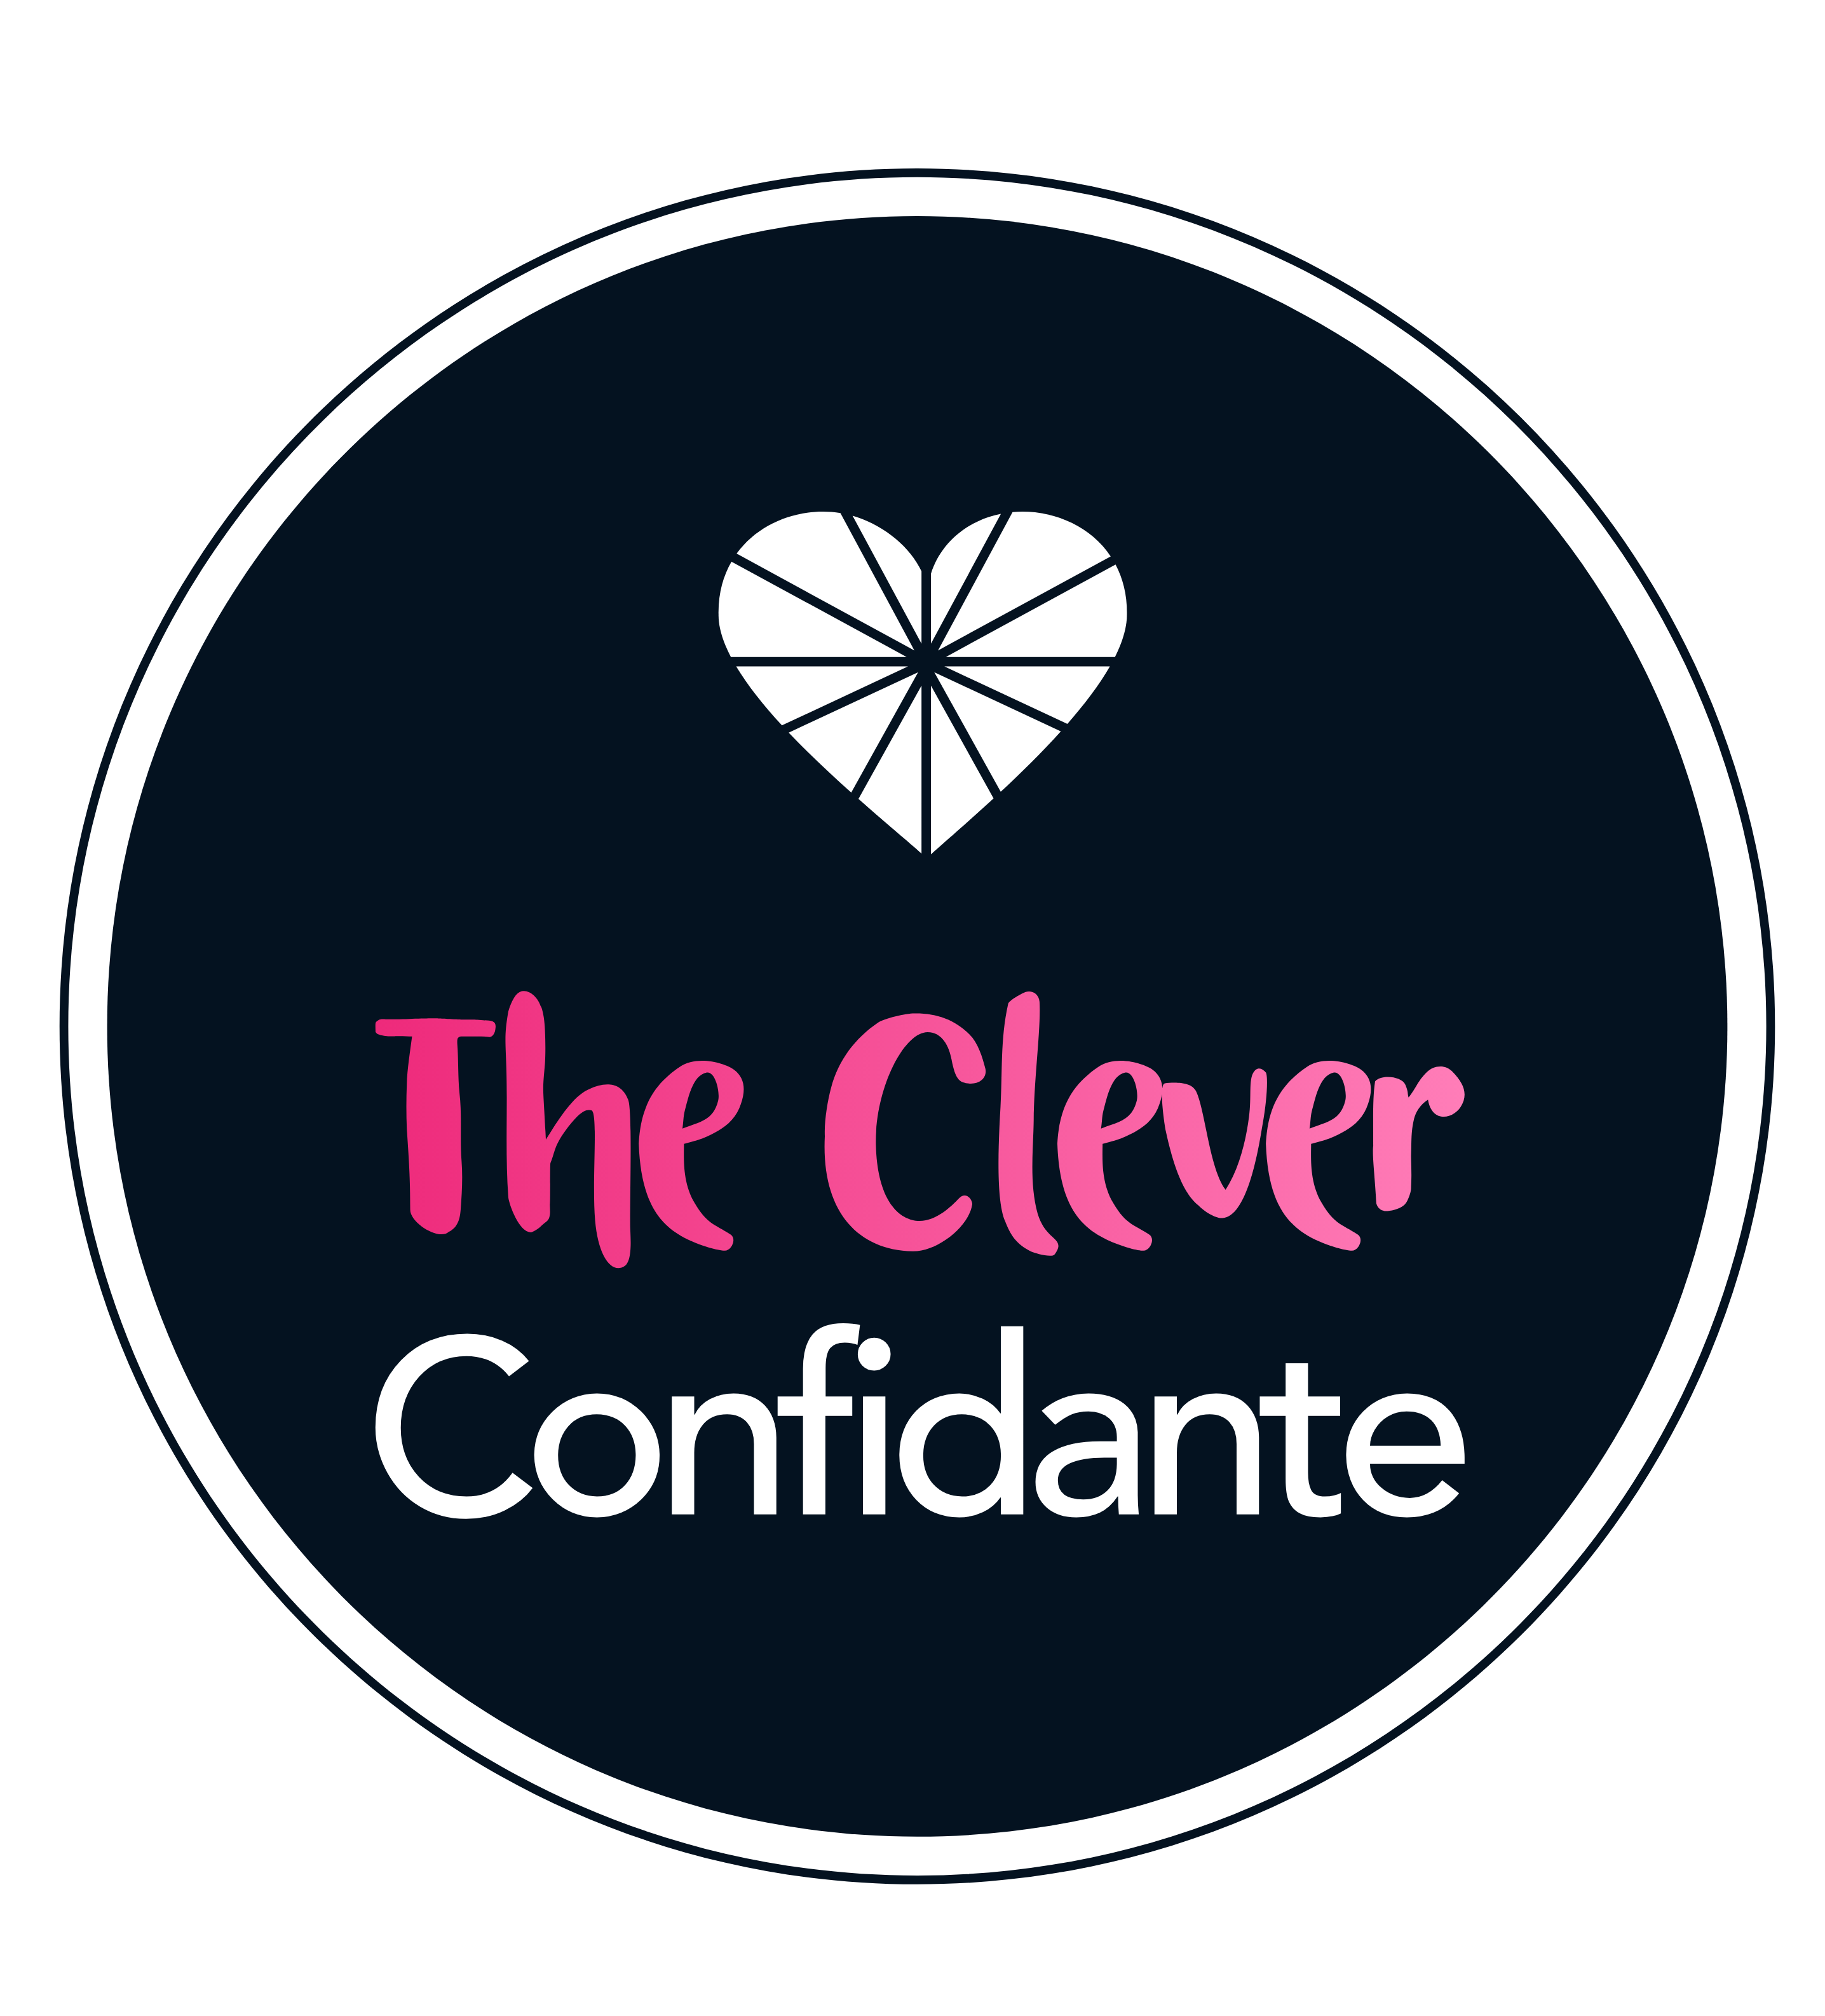 The Clever Confidante